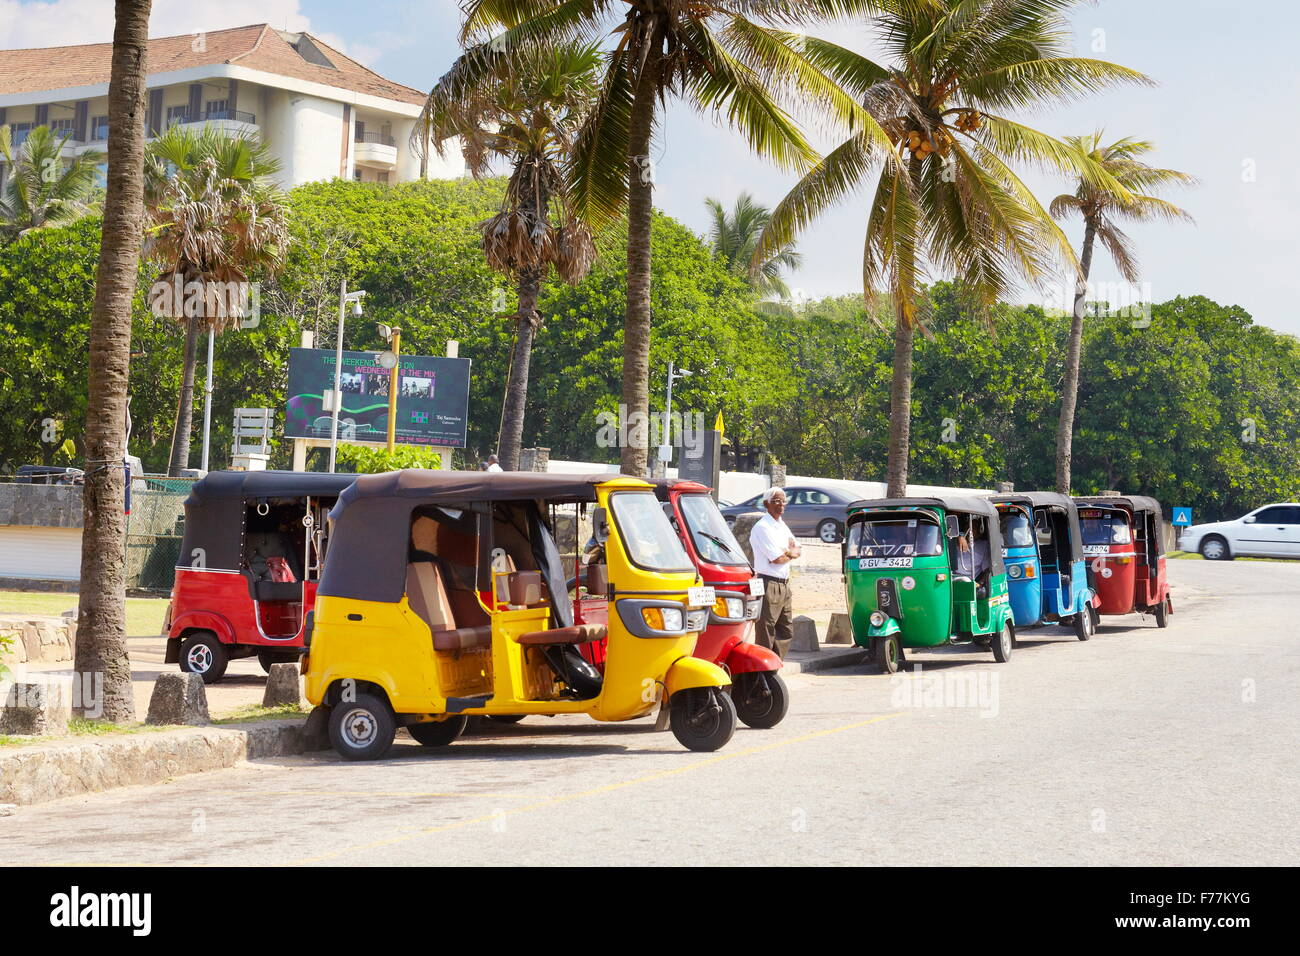 Sri Lanka - COLOMBO, tuk tuk taxi, moyen de transport typique Photo Stock